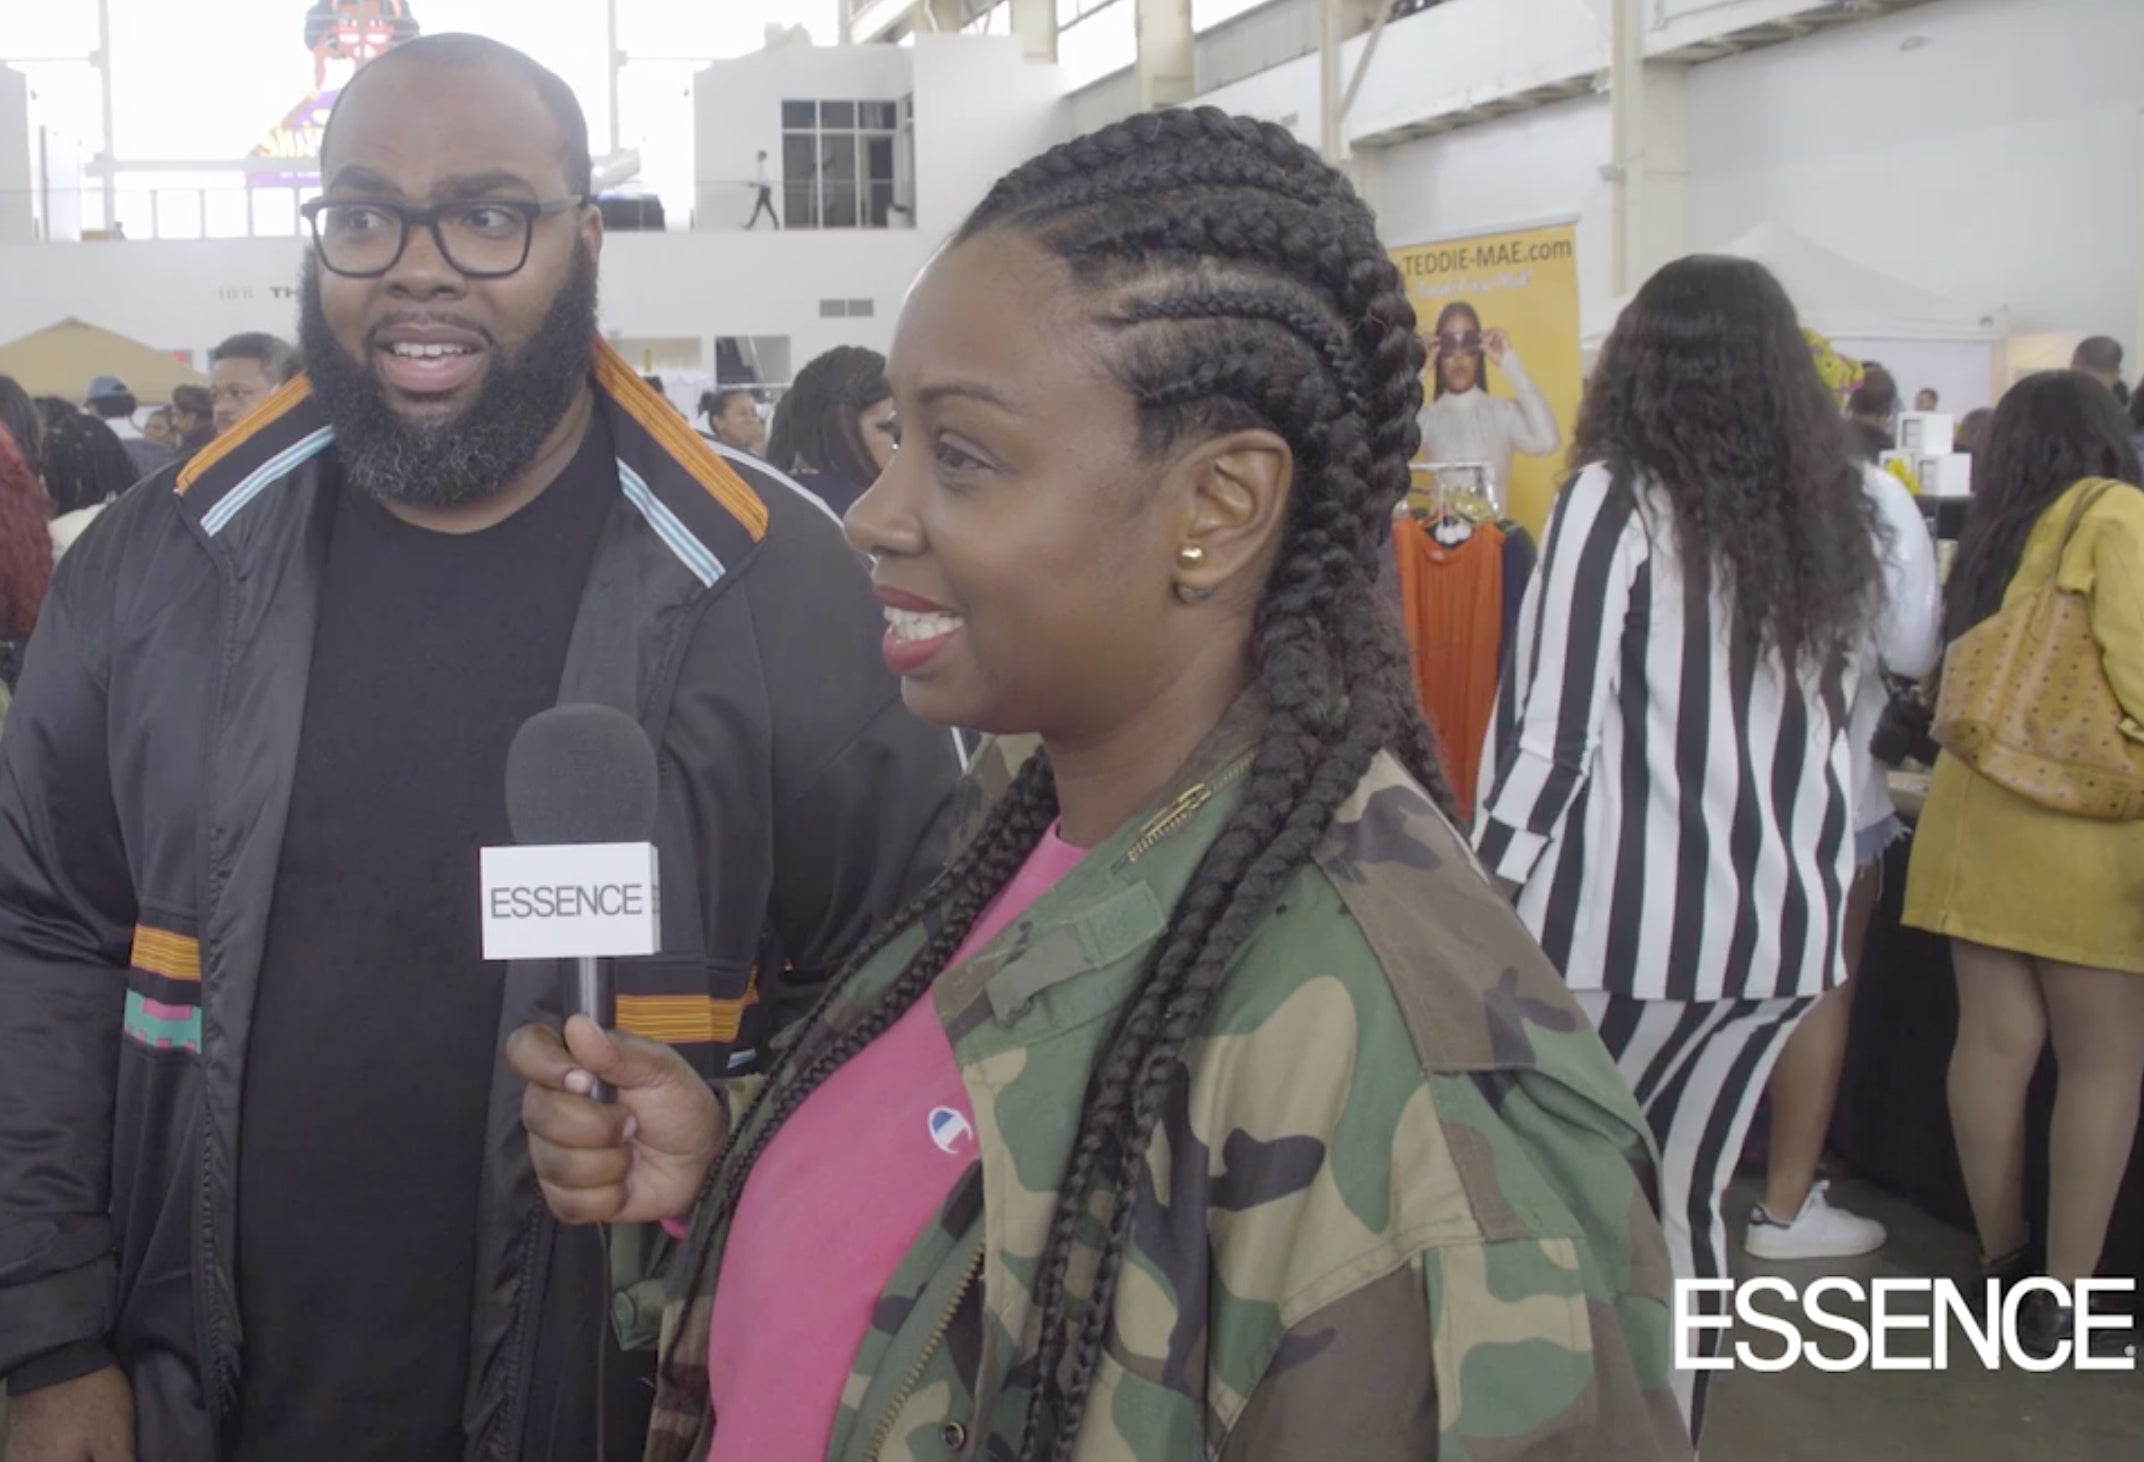 Watch What Happened When We Asked Black Men To Define Terms Like 'Co-Wash,' 'Snatched' And More